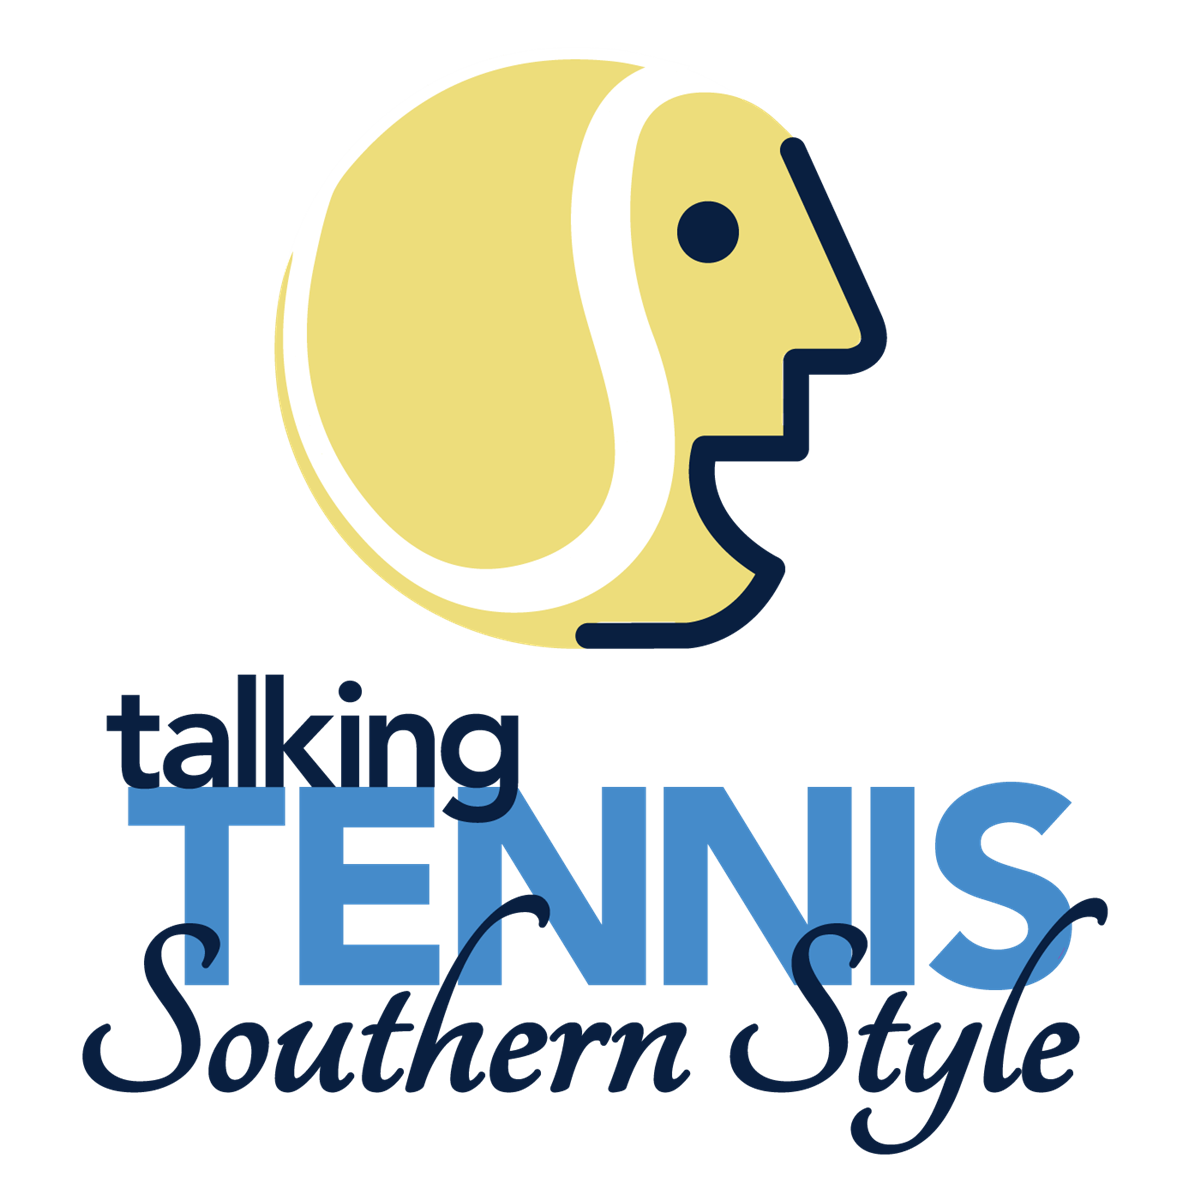 Talking_Tennis_Southern_Style_square_1400